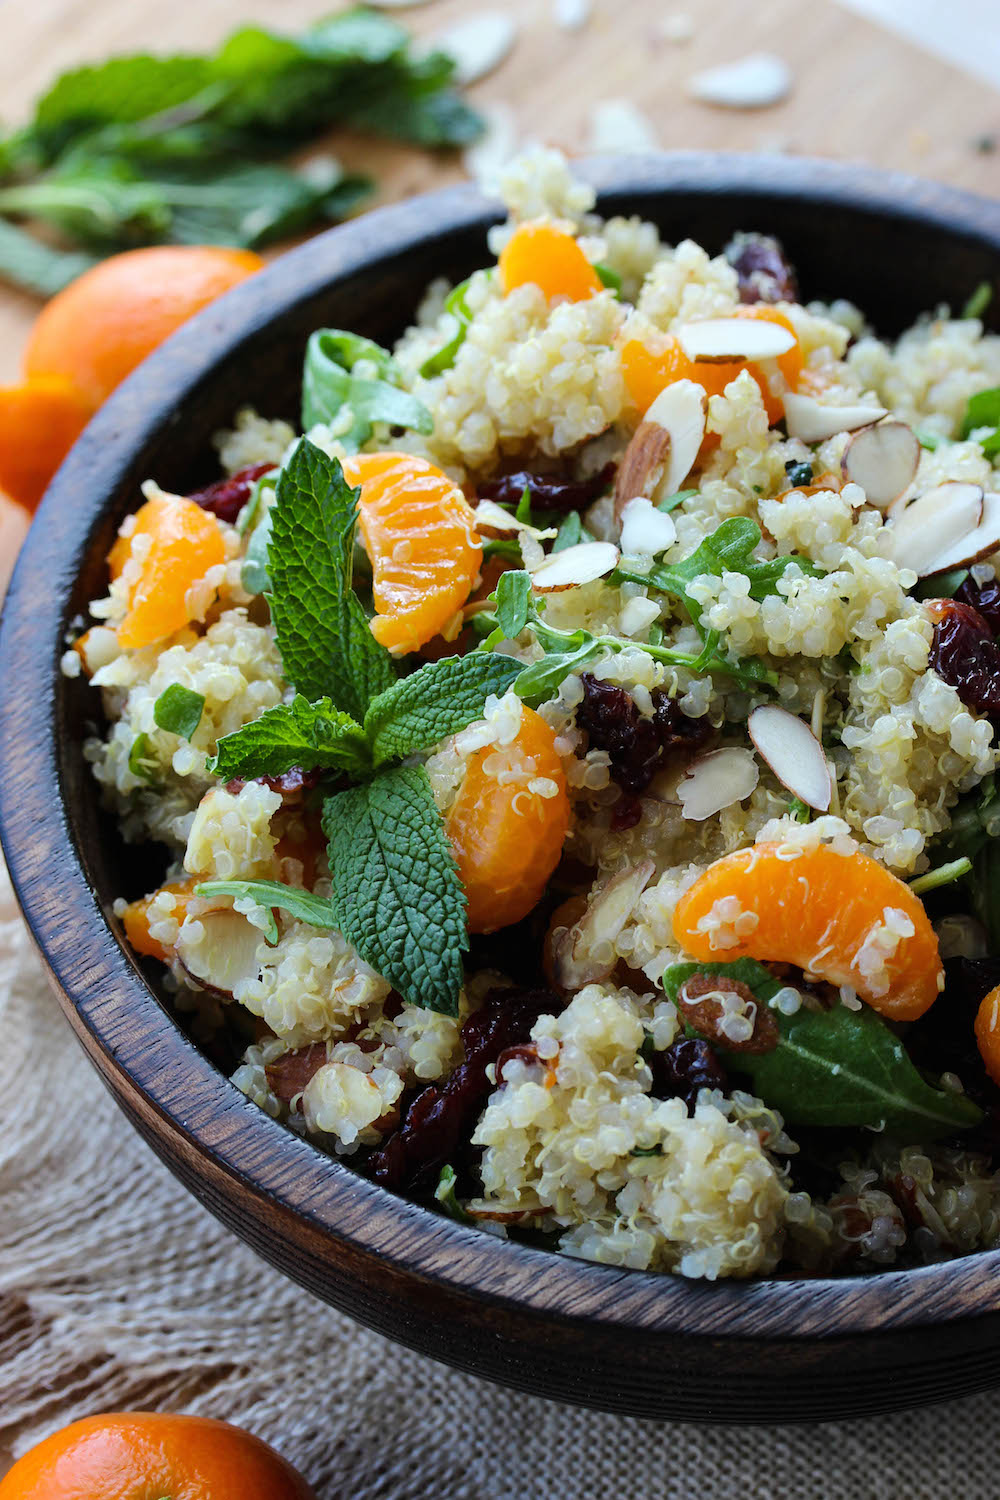 Citrus Mint Quinoa Salad with Cherries & Arugula; A light, nutritious and incredibly simple salad | dishingouthealth.com